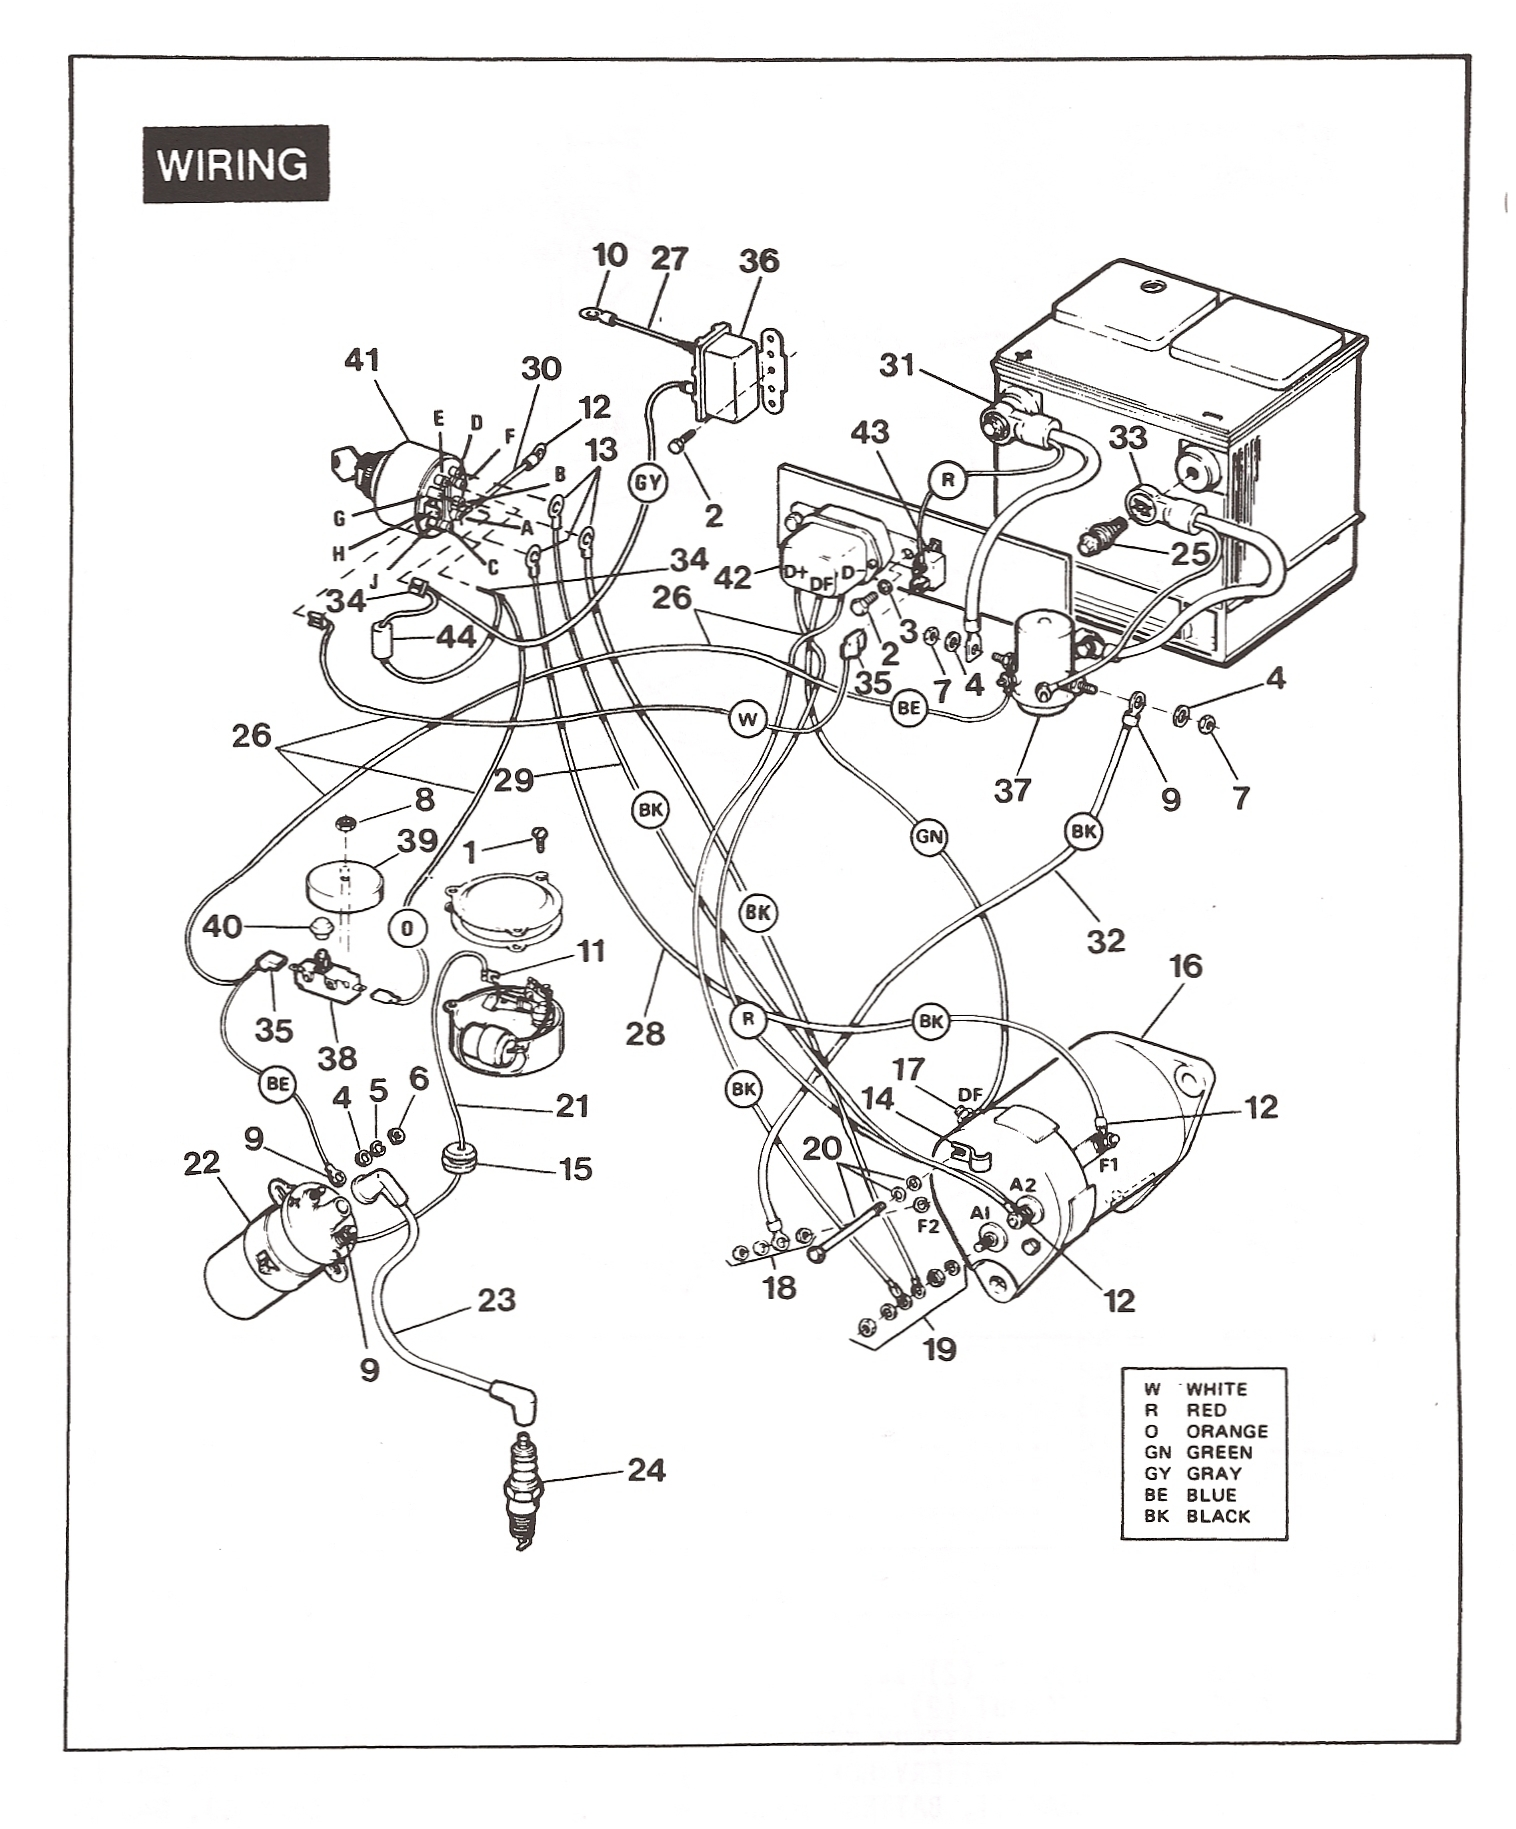 Gallery further Gallery moreover Yamaha G2 J38 Golf Cart Wiring Diagram Gas further Bultaco Alpina Wiring Diagram moreover Par Car Golf Cart Wiring Diagram. on 1986 harley davidson wiring diagram